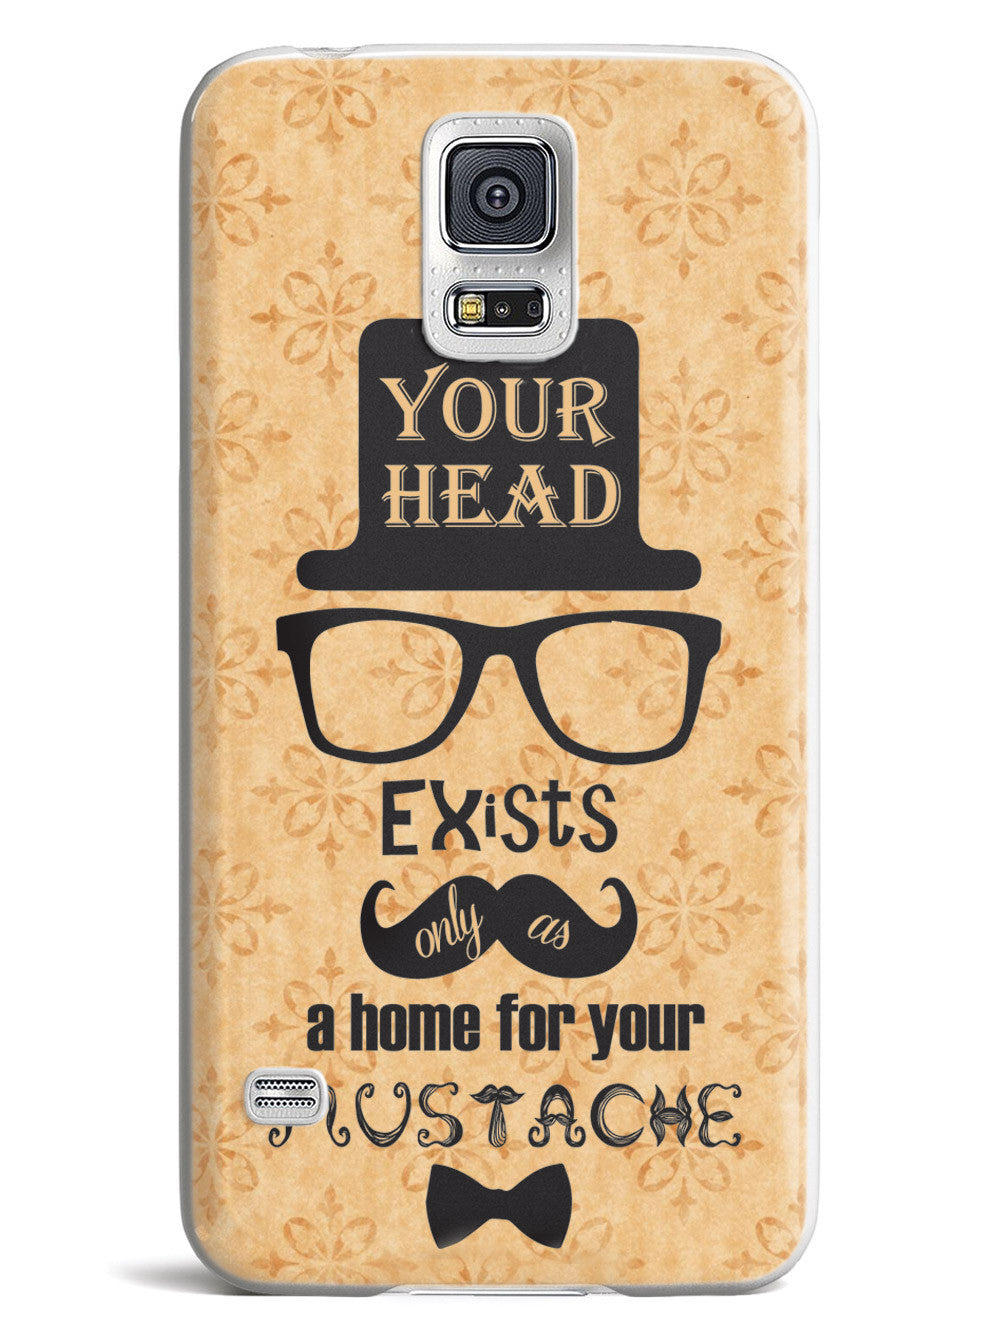 Home for Your Mustache Case